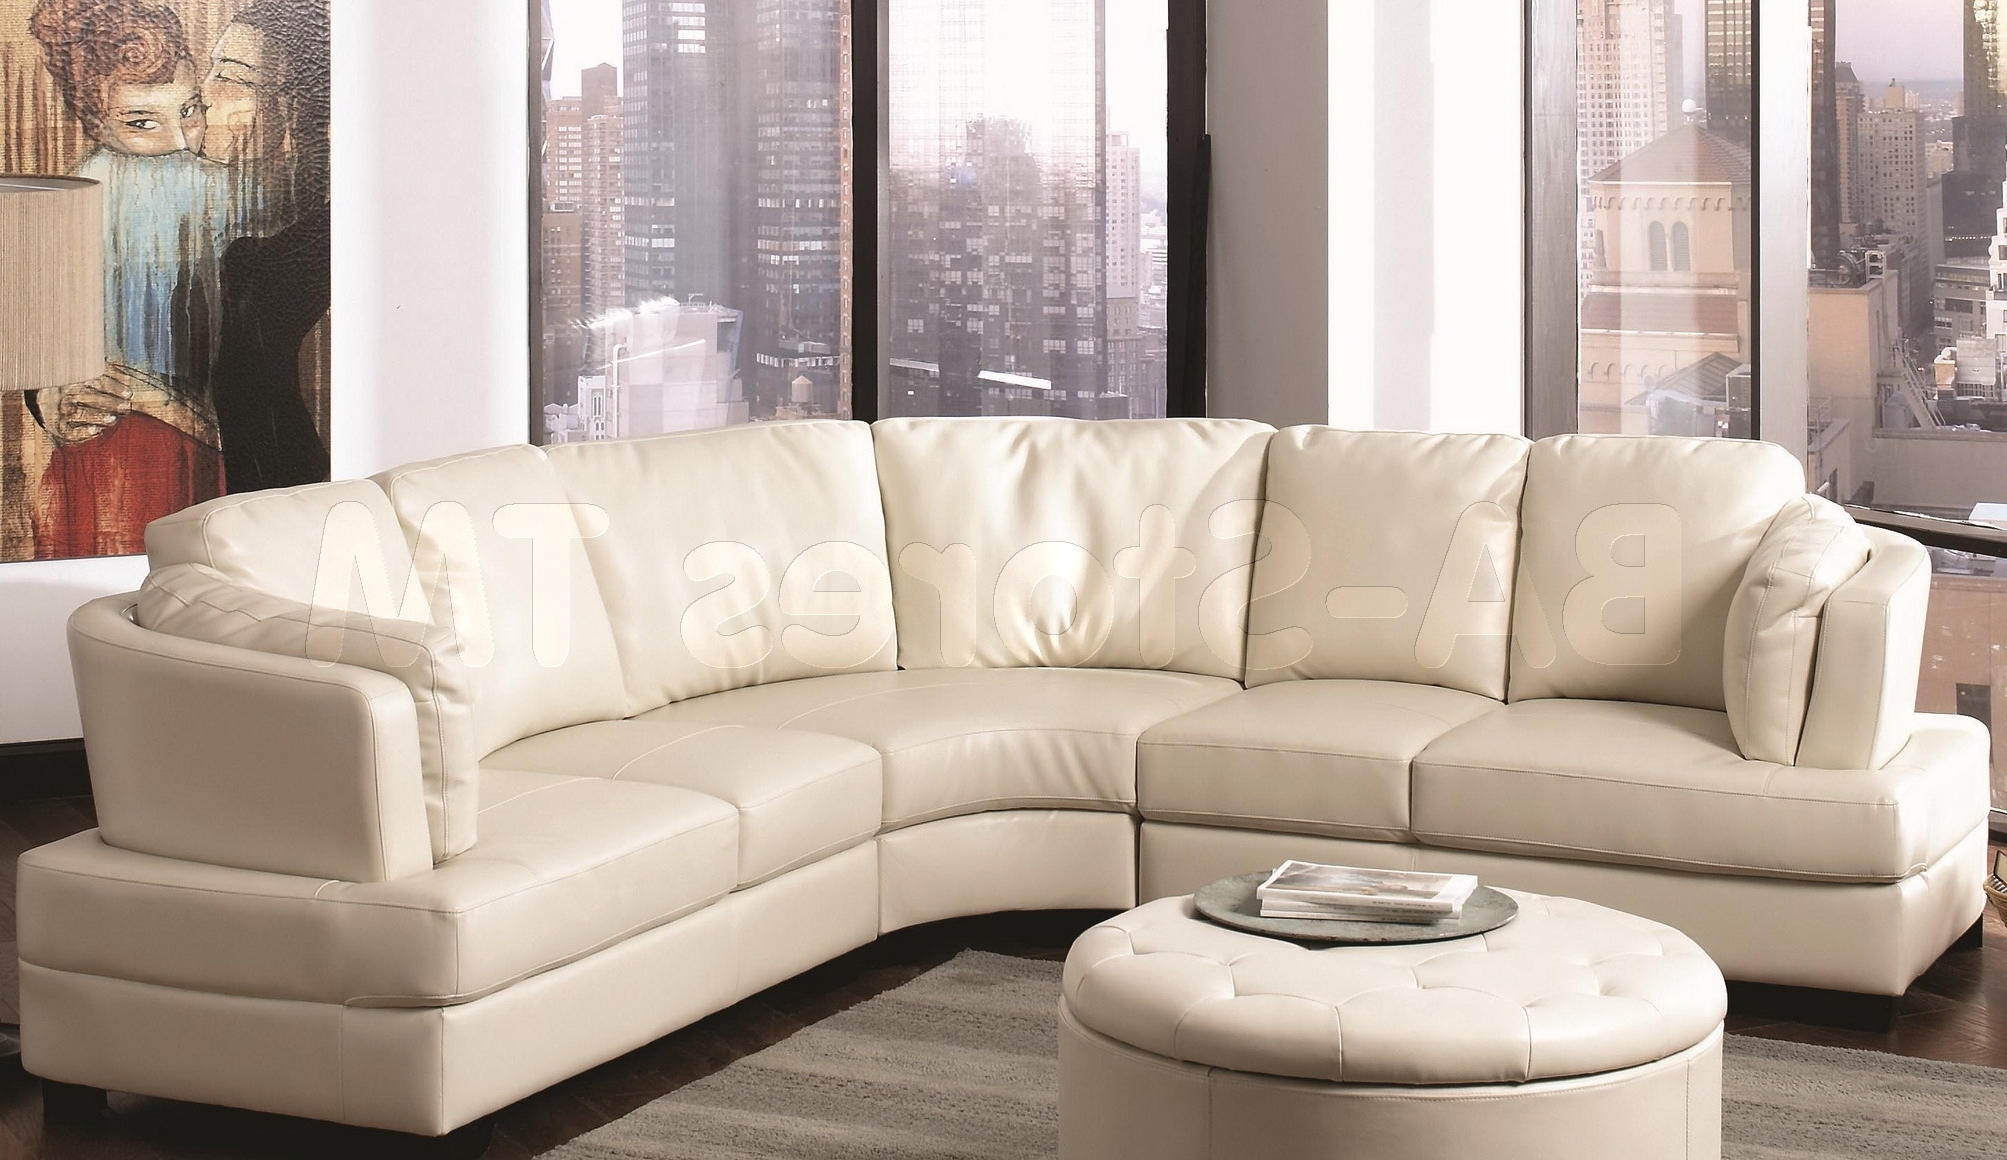 Sectional Sofas For Small Spaces Corner Sofas For Small Rooms Regarding Most Popular Curved Sectional Sofas With Recliner (View 16 of 20)